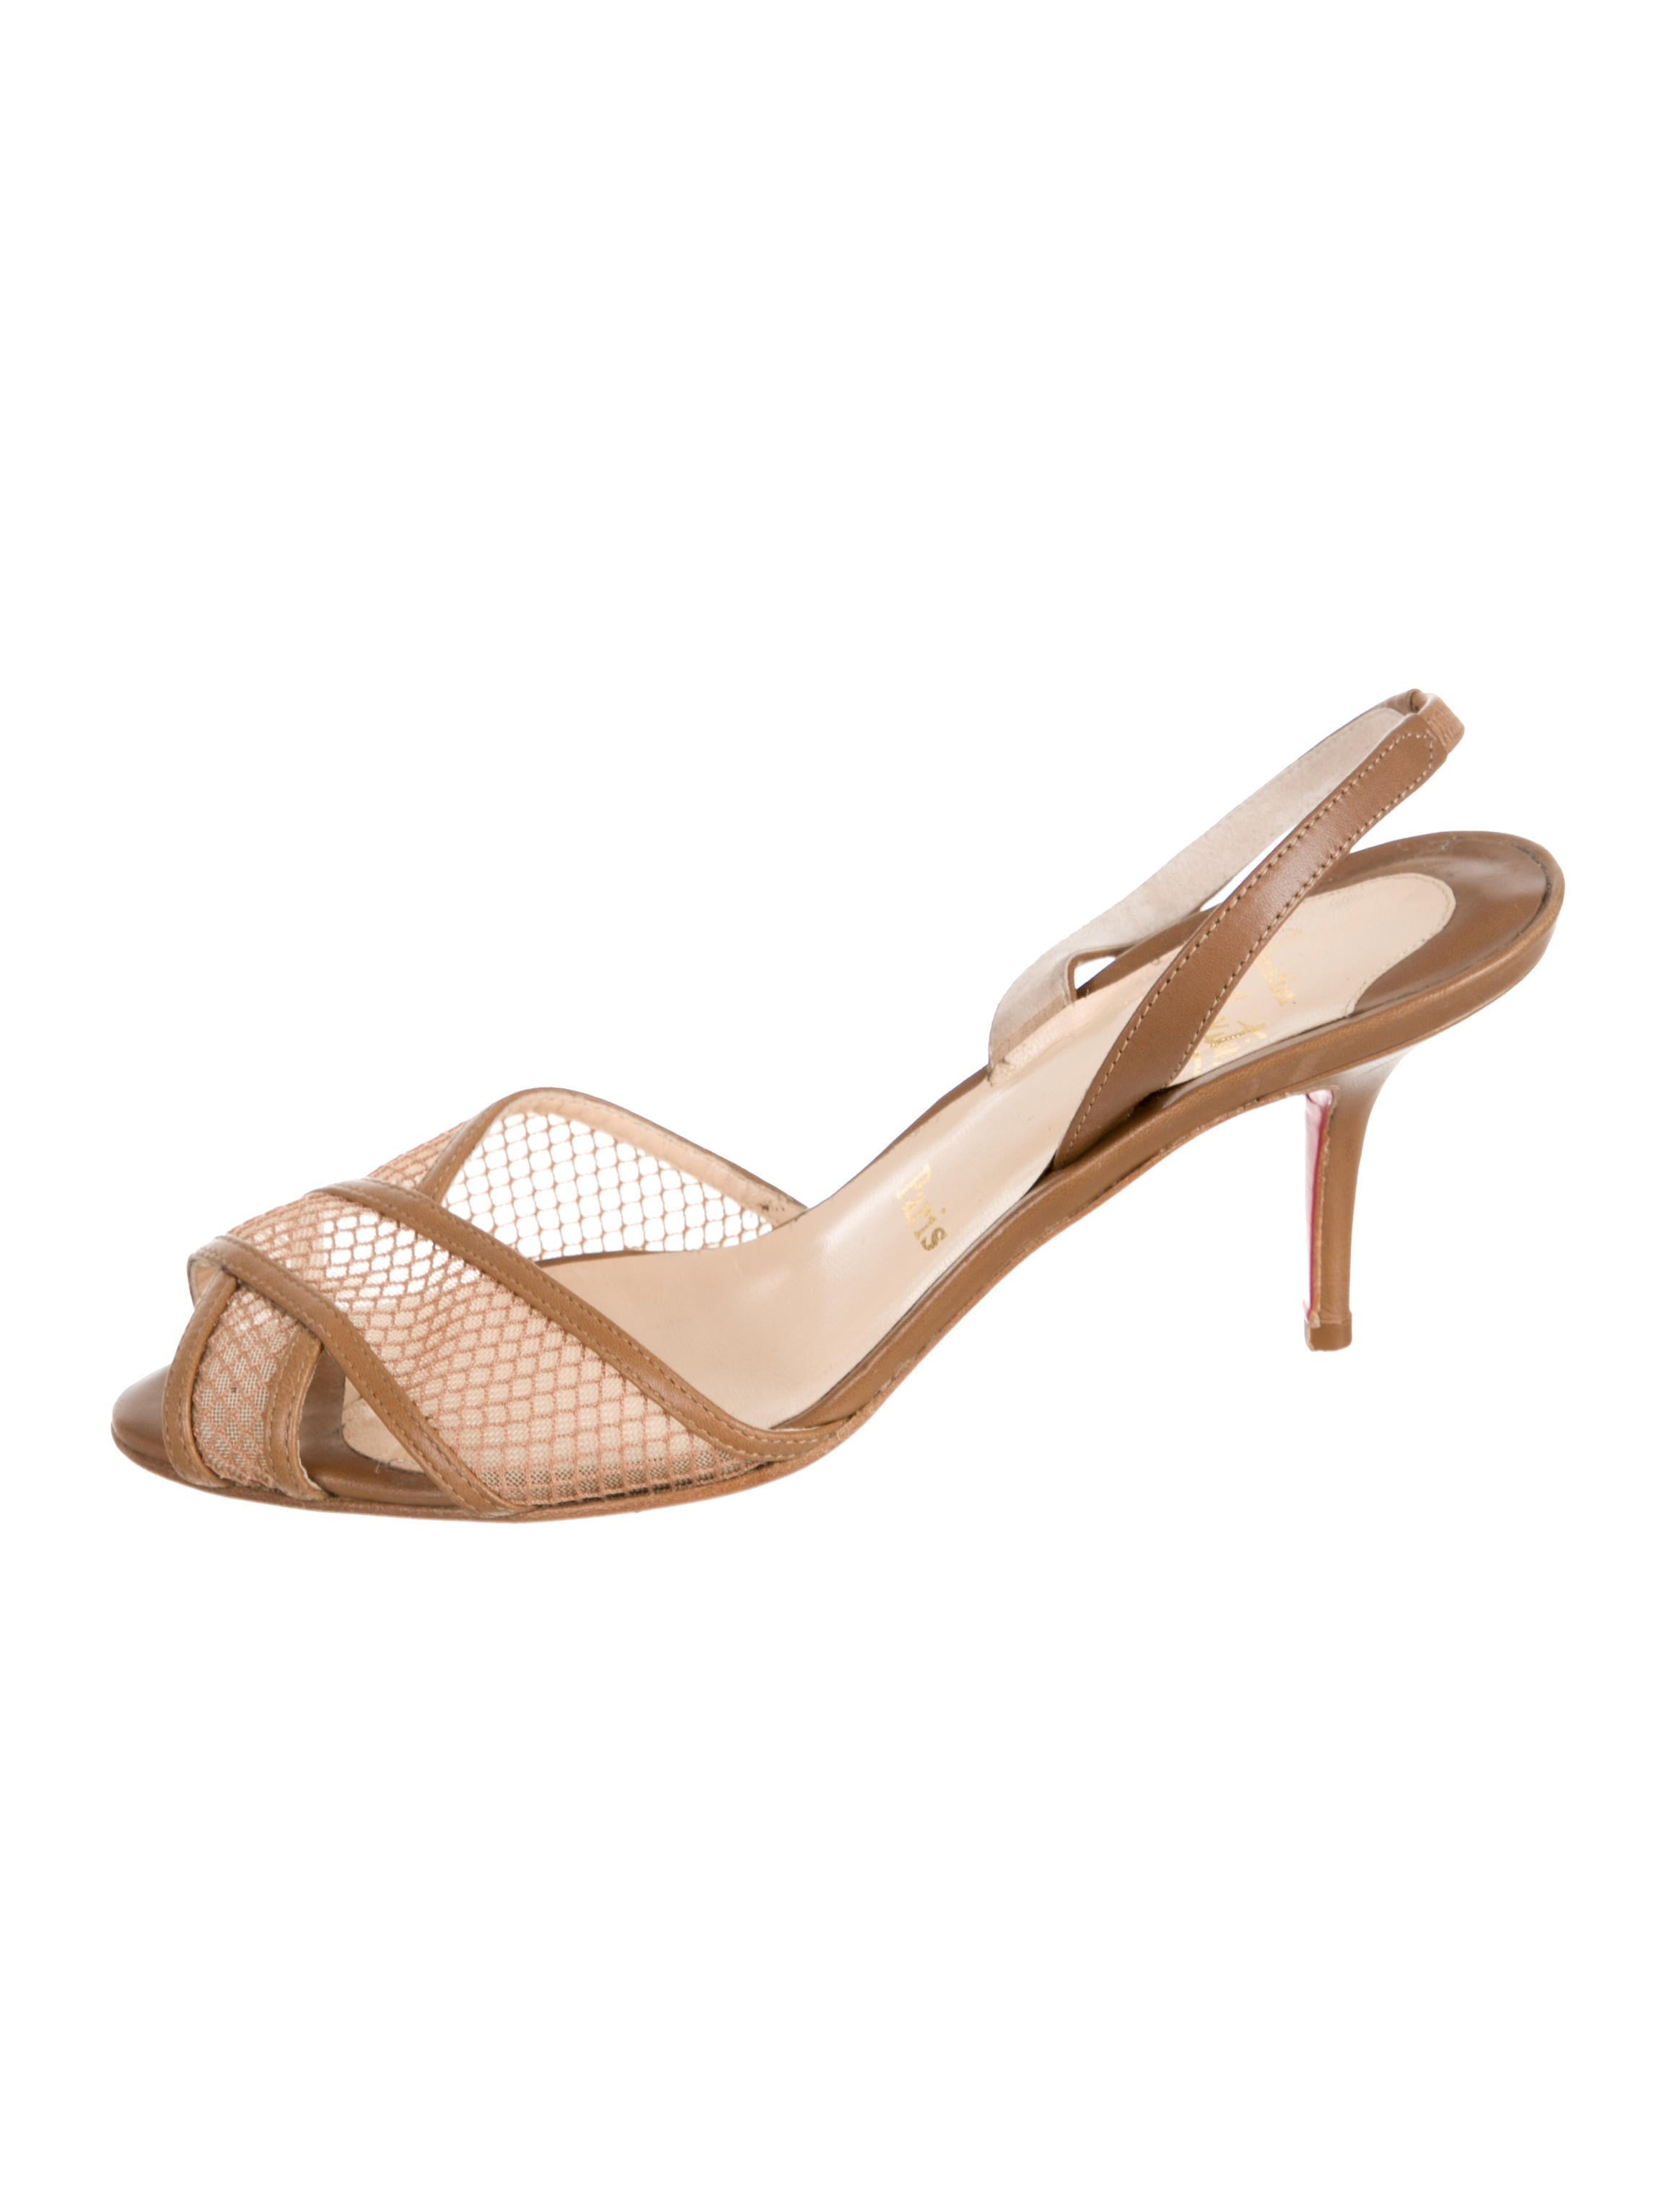 christian louboutin knockoff shoes - christian louboutin slingback mesh sandals, louboutin rollerboy ...